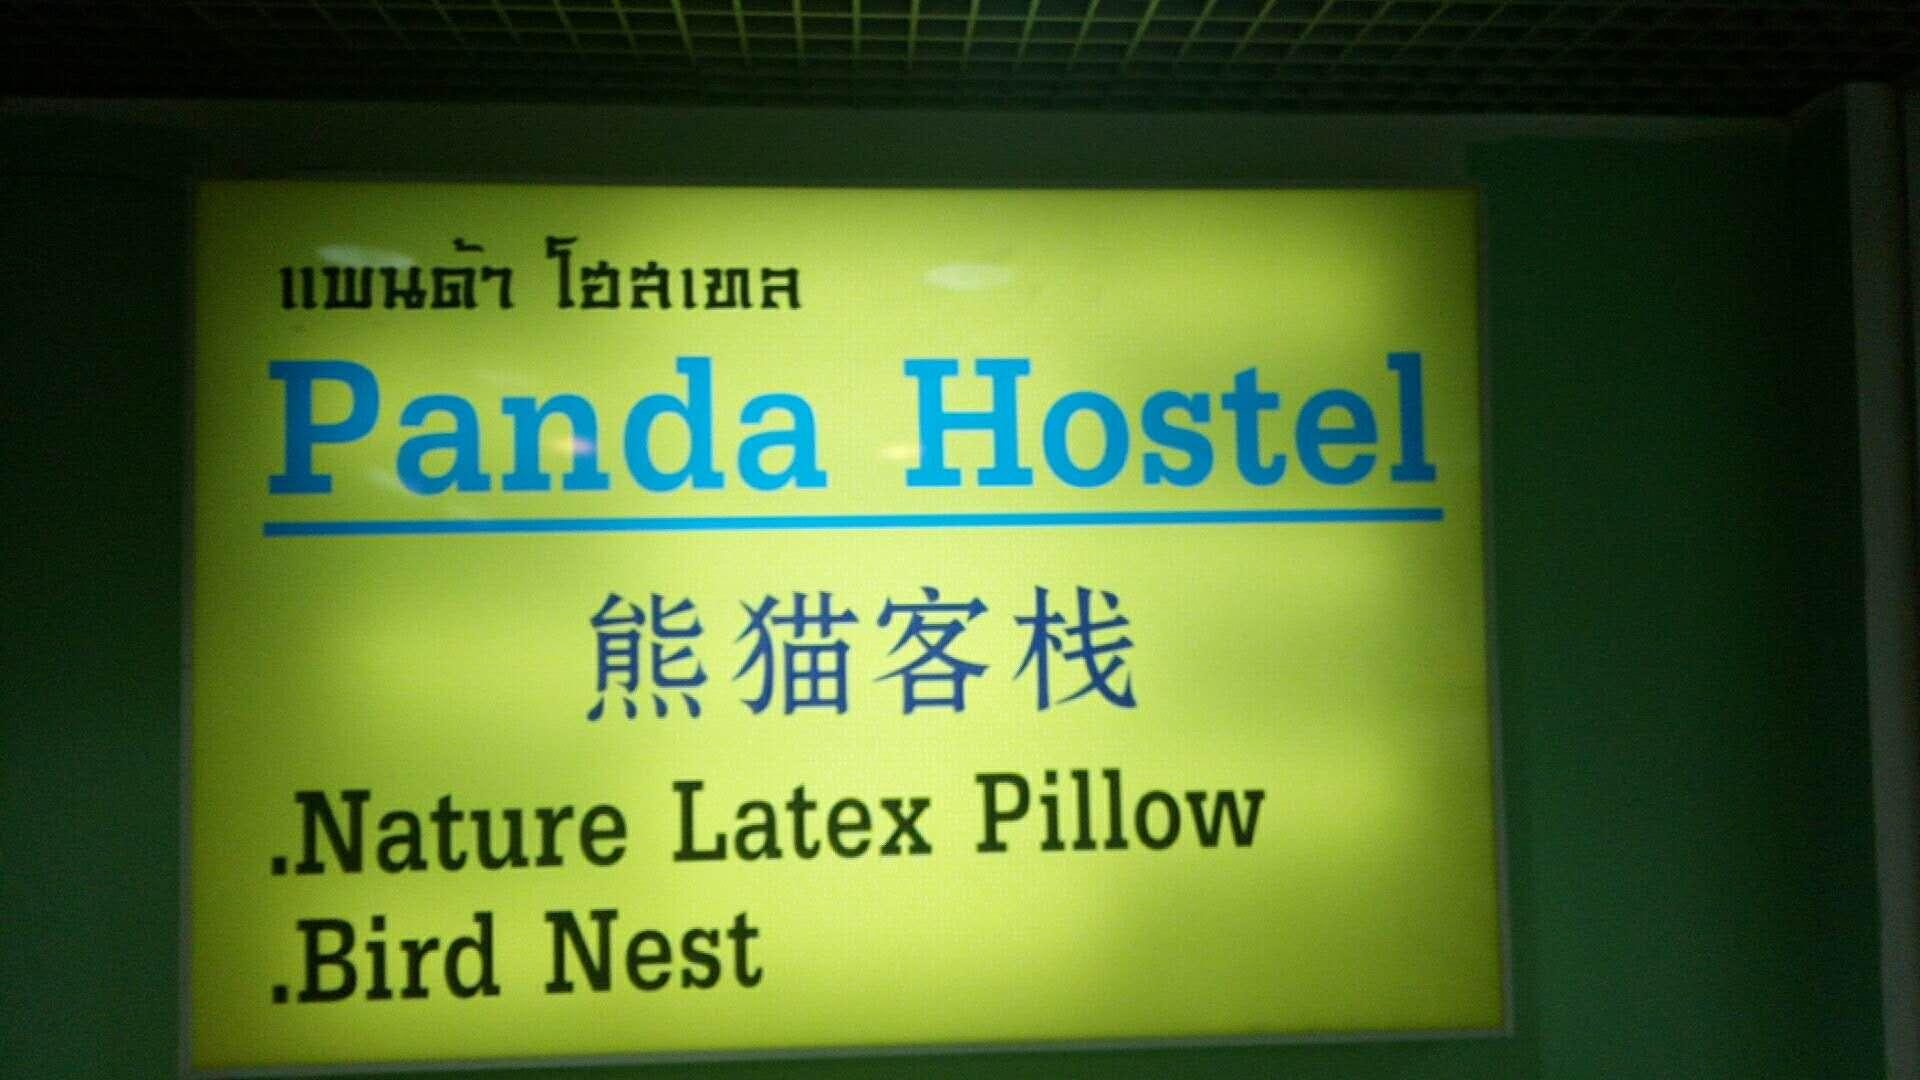 PANDA HOSTEL Reviews